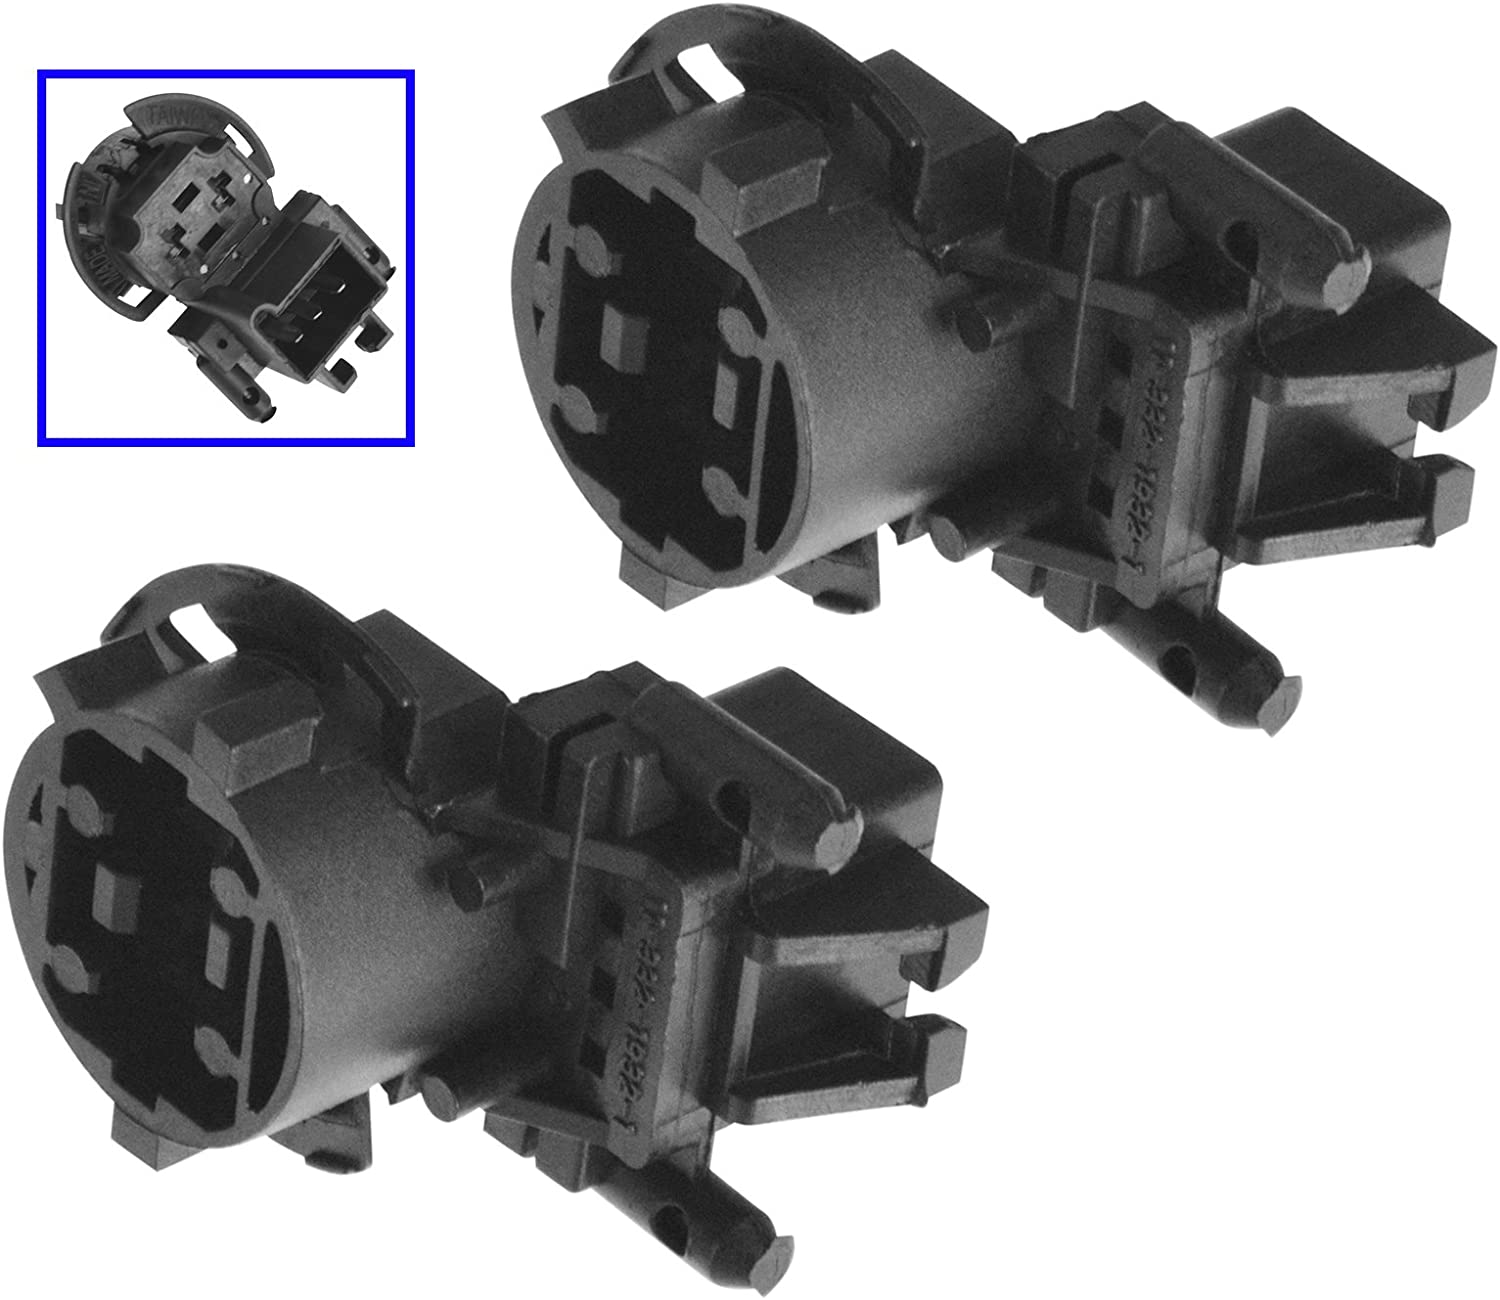 AC 未使用 Delco 89025036 Tail Light Bulb お気に入 Socket for Cavalier Chevy Pair